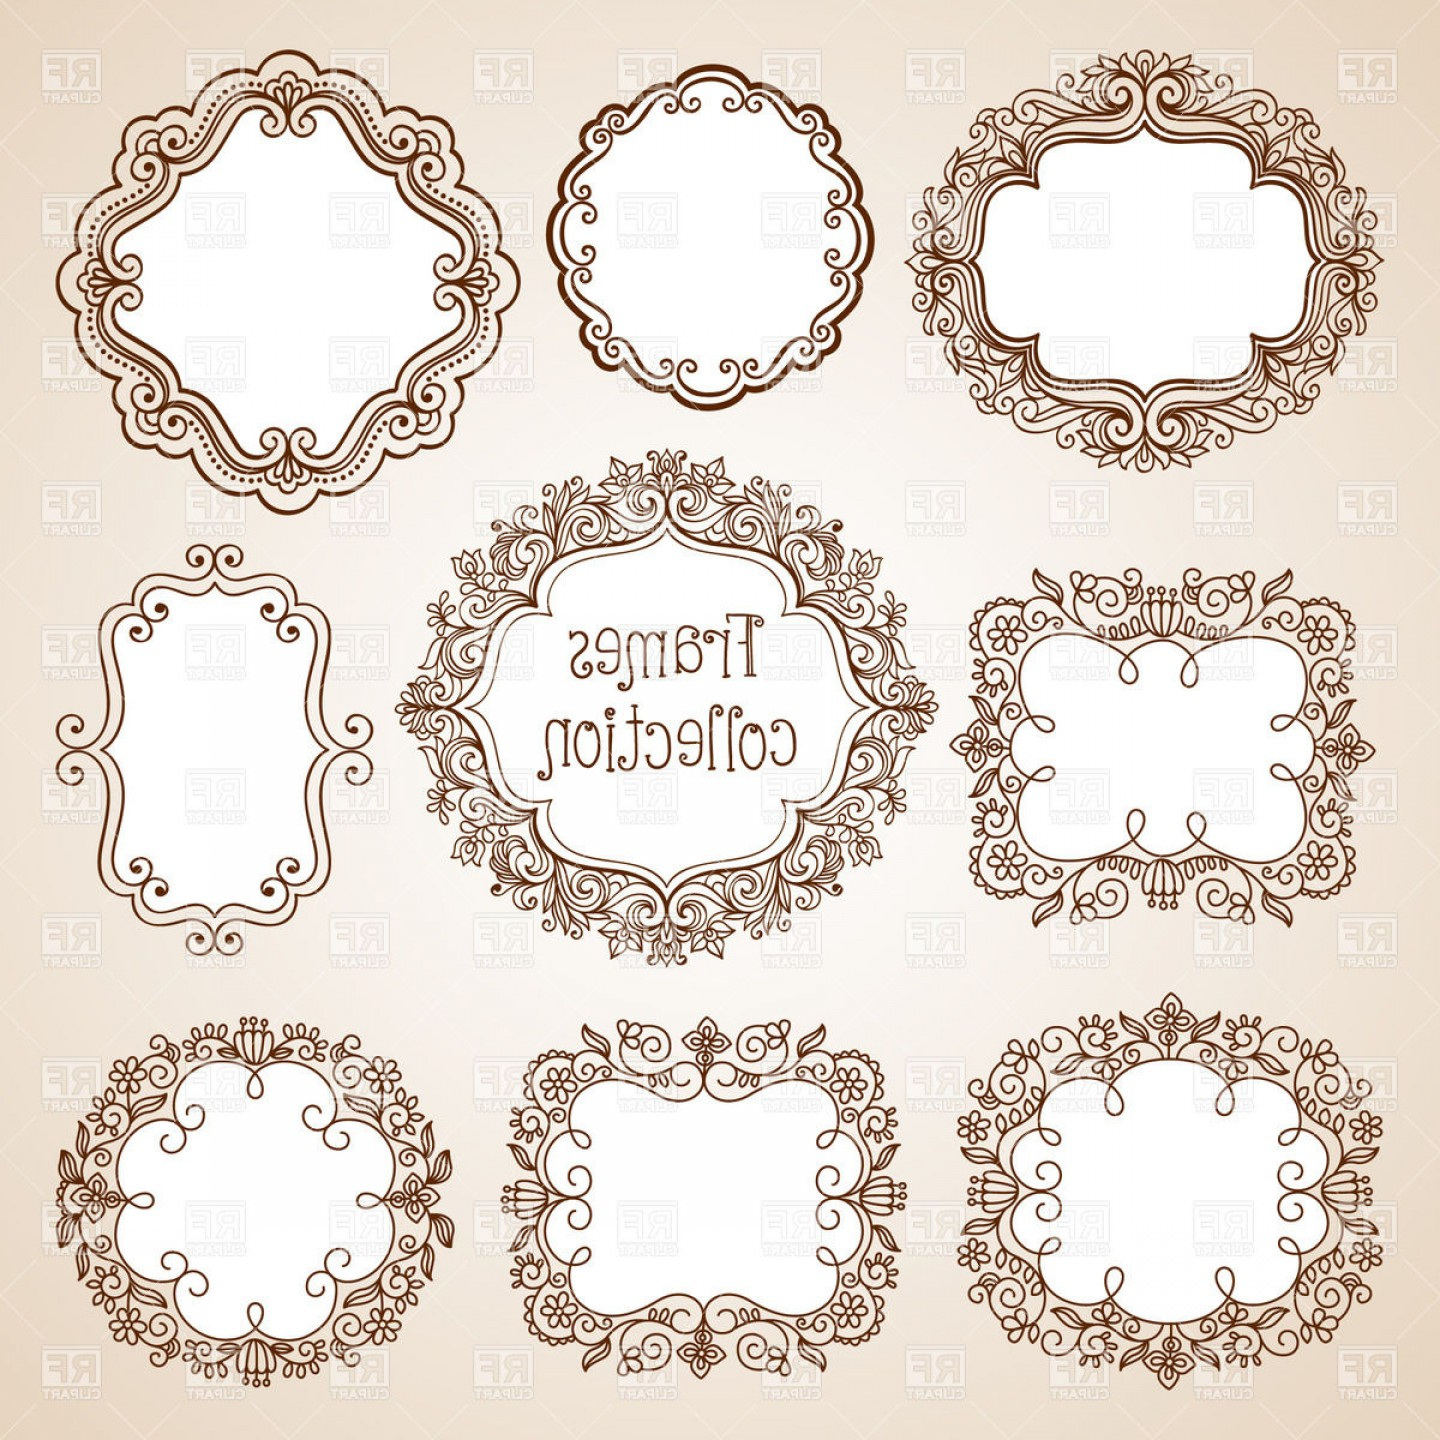 Vector Ornate Vintage Frame Blank: Set Of Ornate Vintage Frames Round Oval And Square Vector Clipart